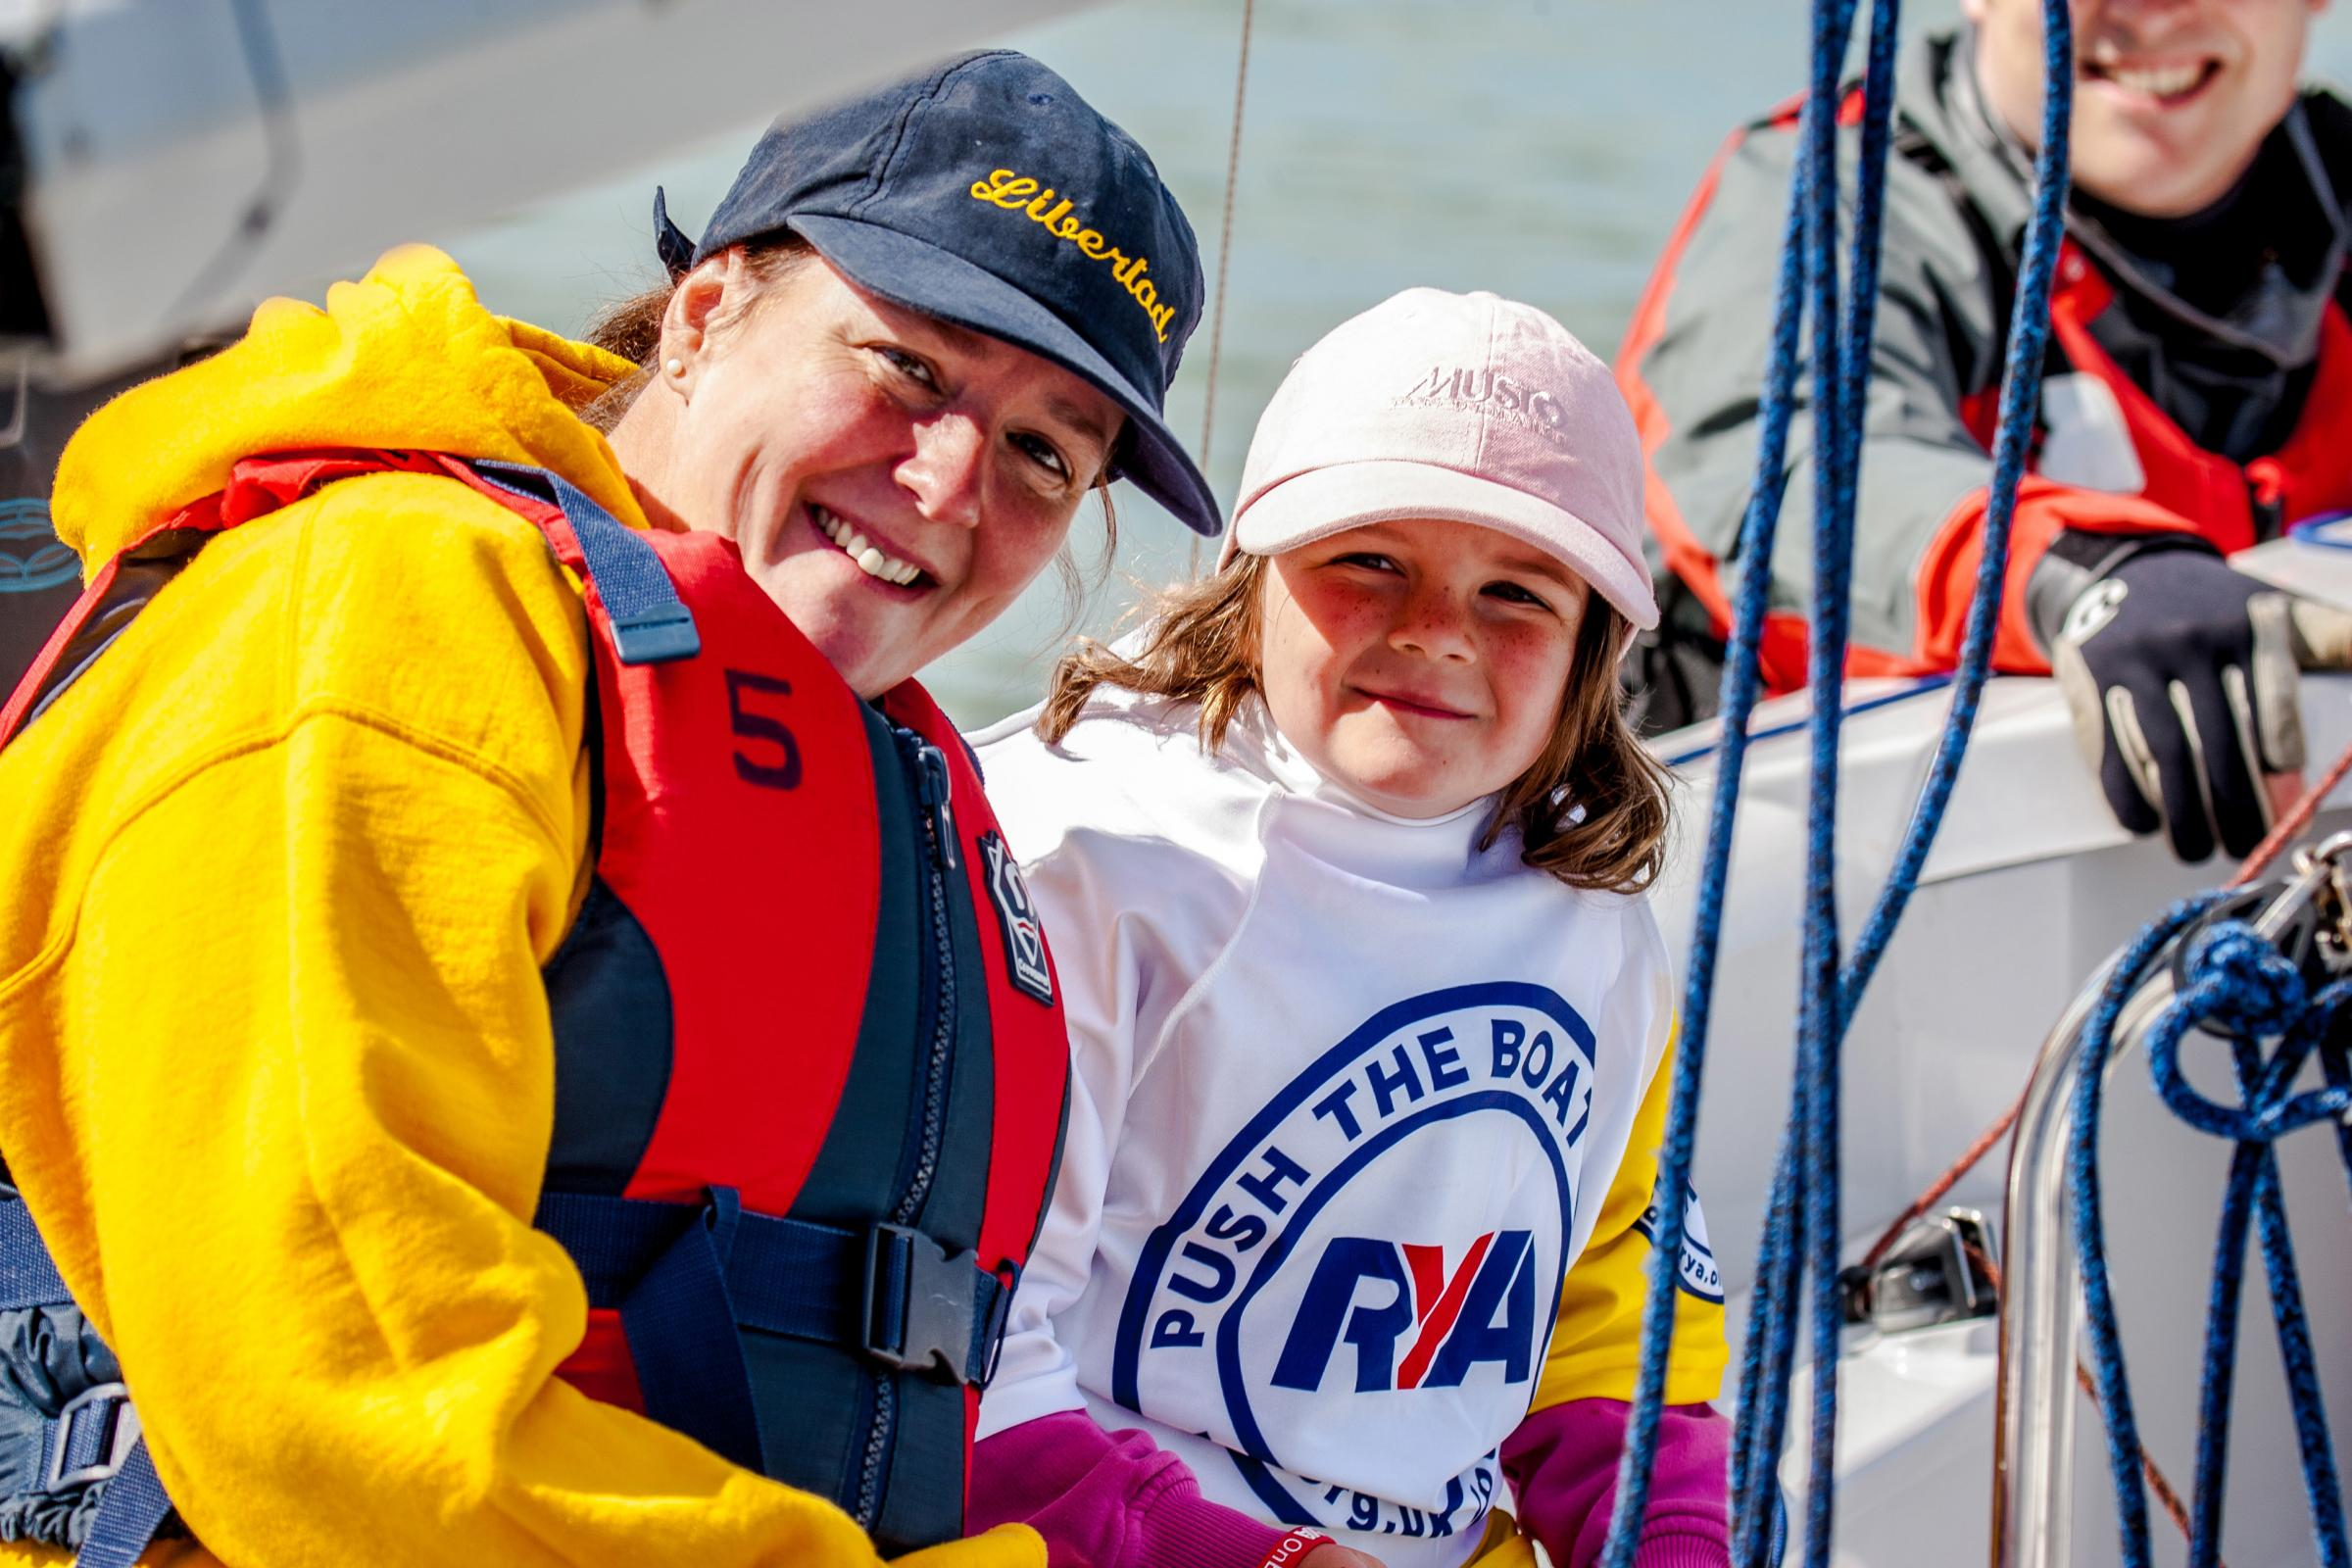 'It's a chance to get away from screen time' - Campaign launches sailing open days